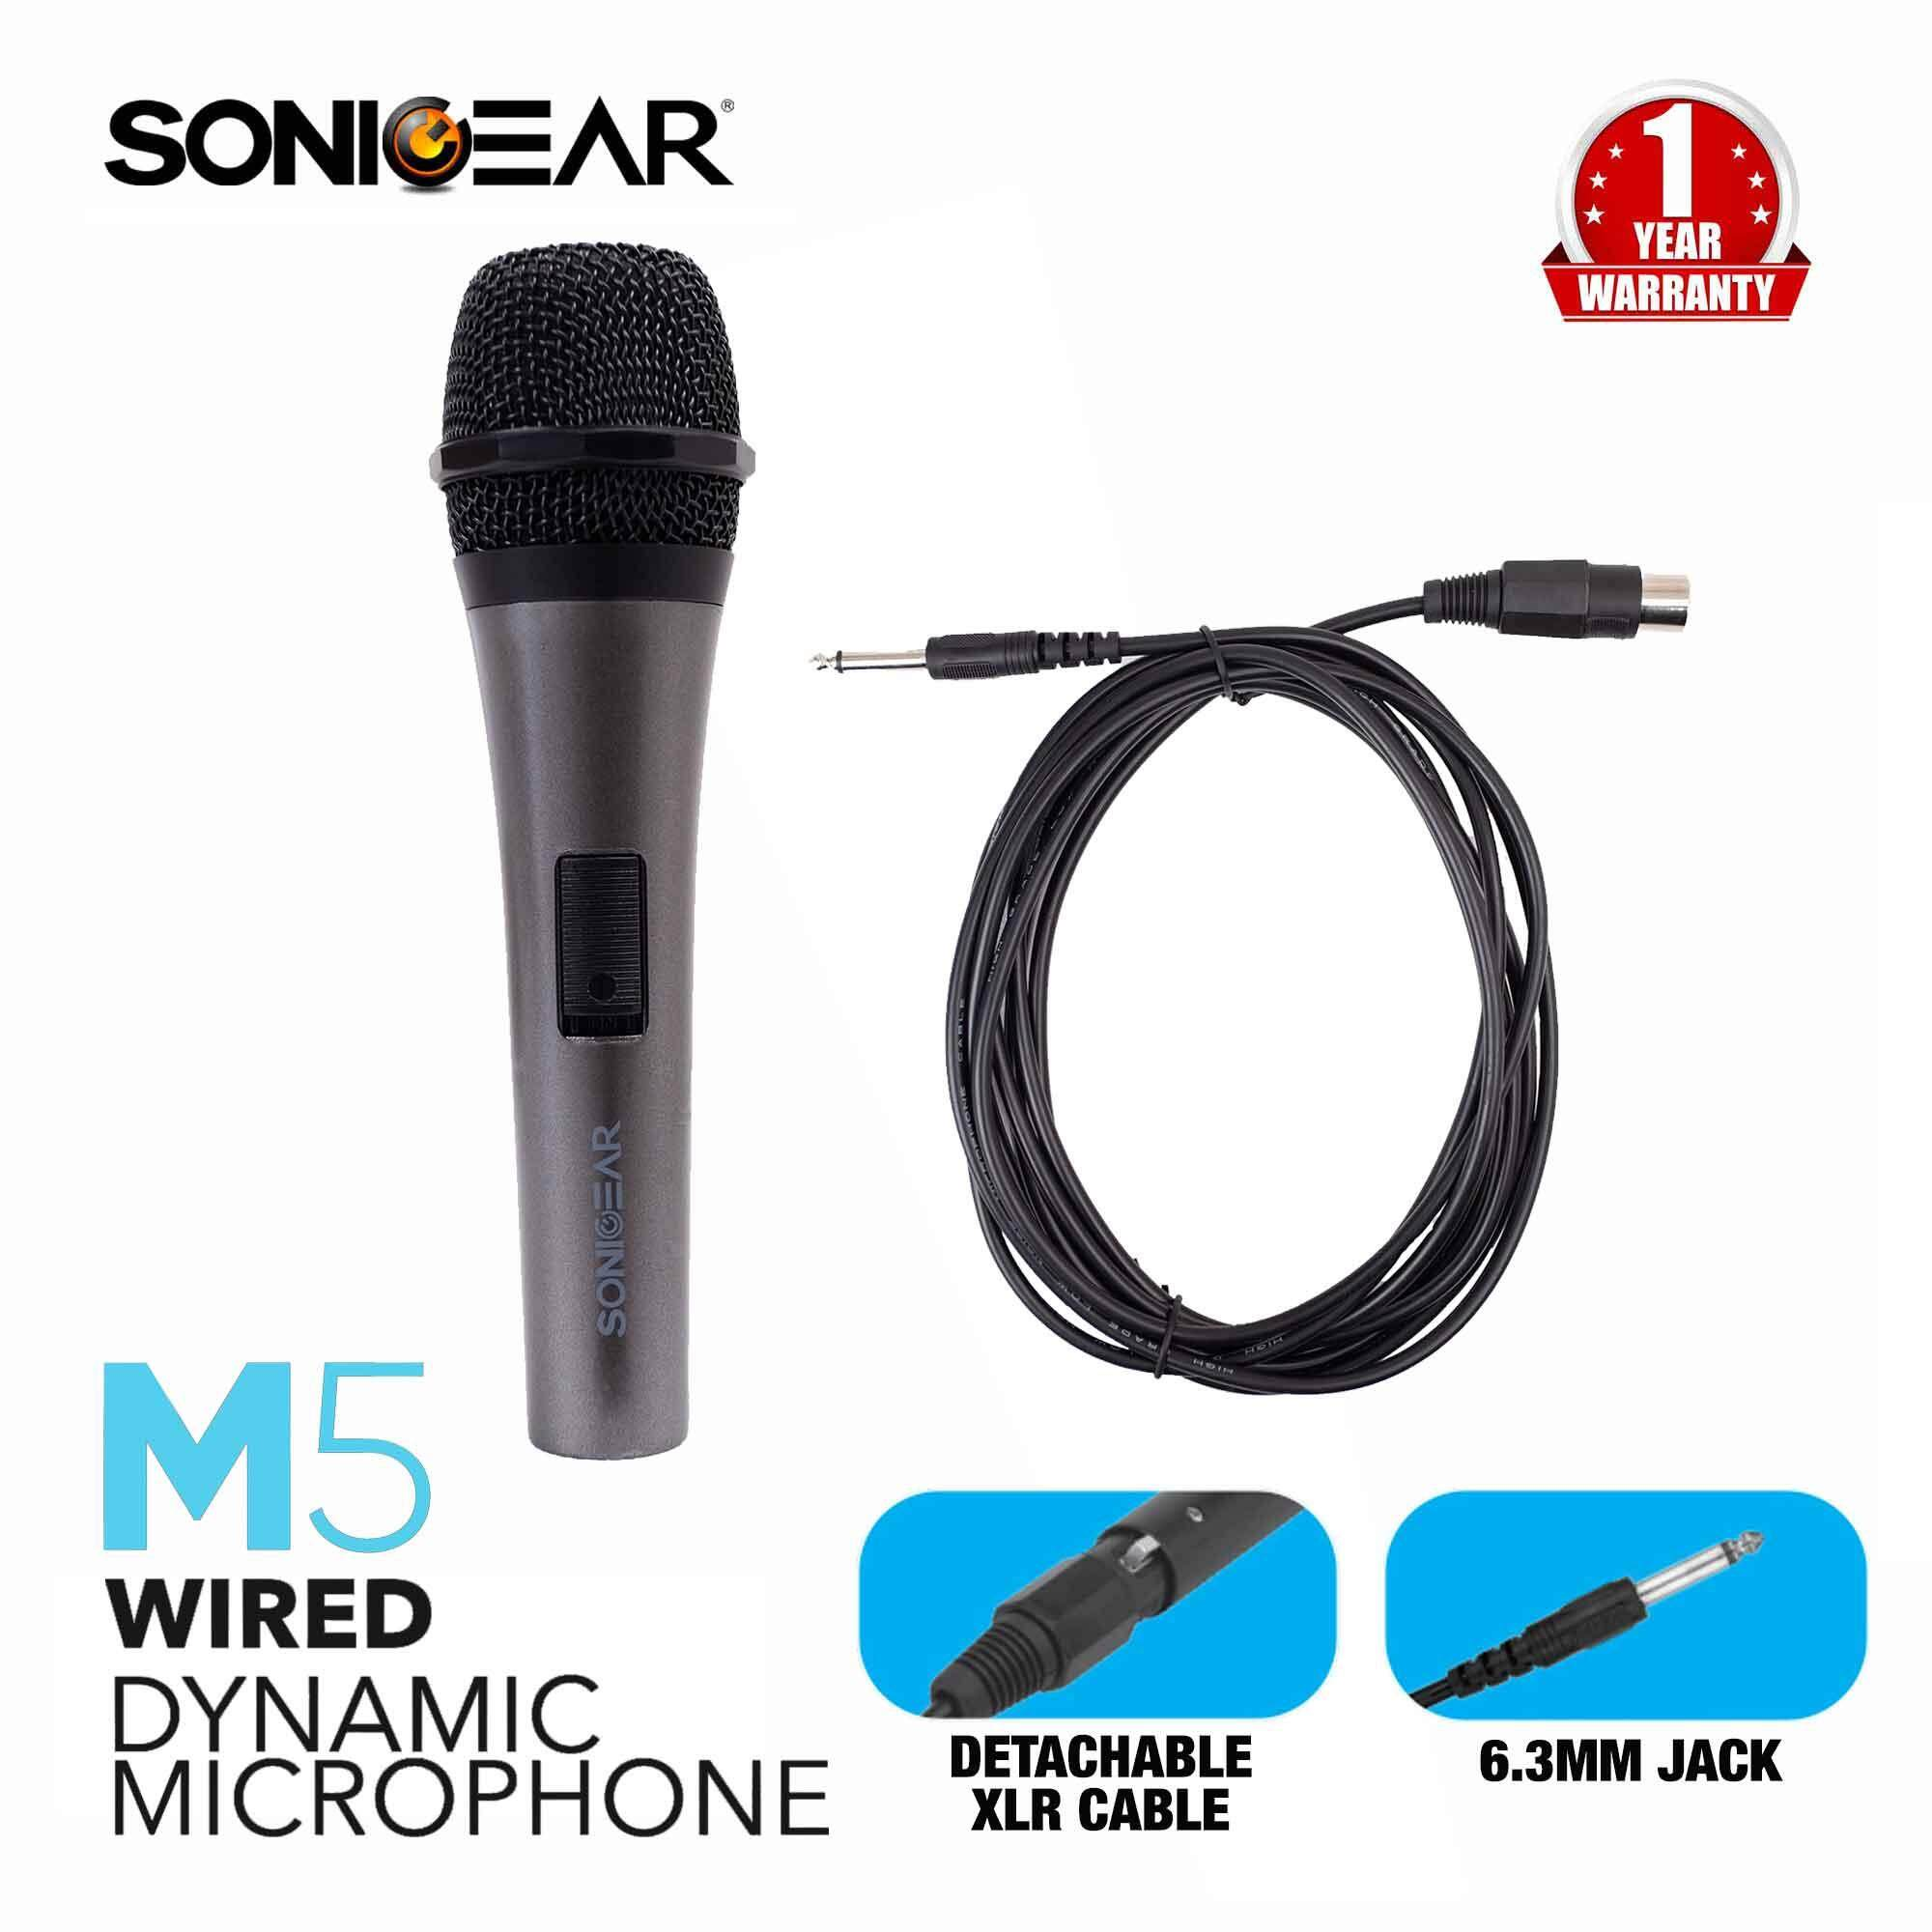 SonicGear M5 Wired Dynamic Microphone